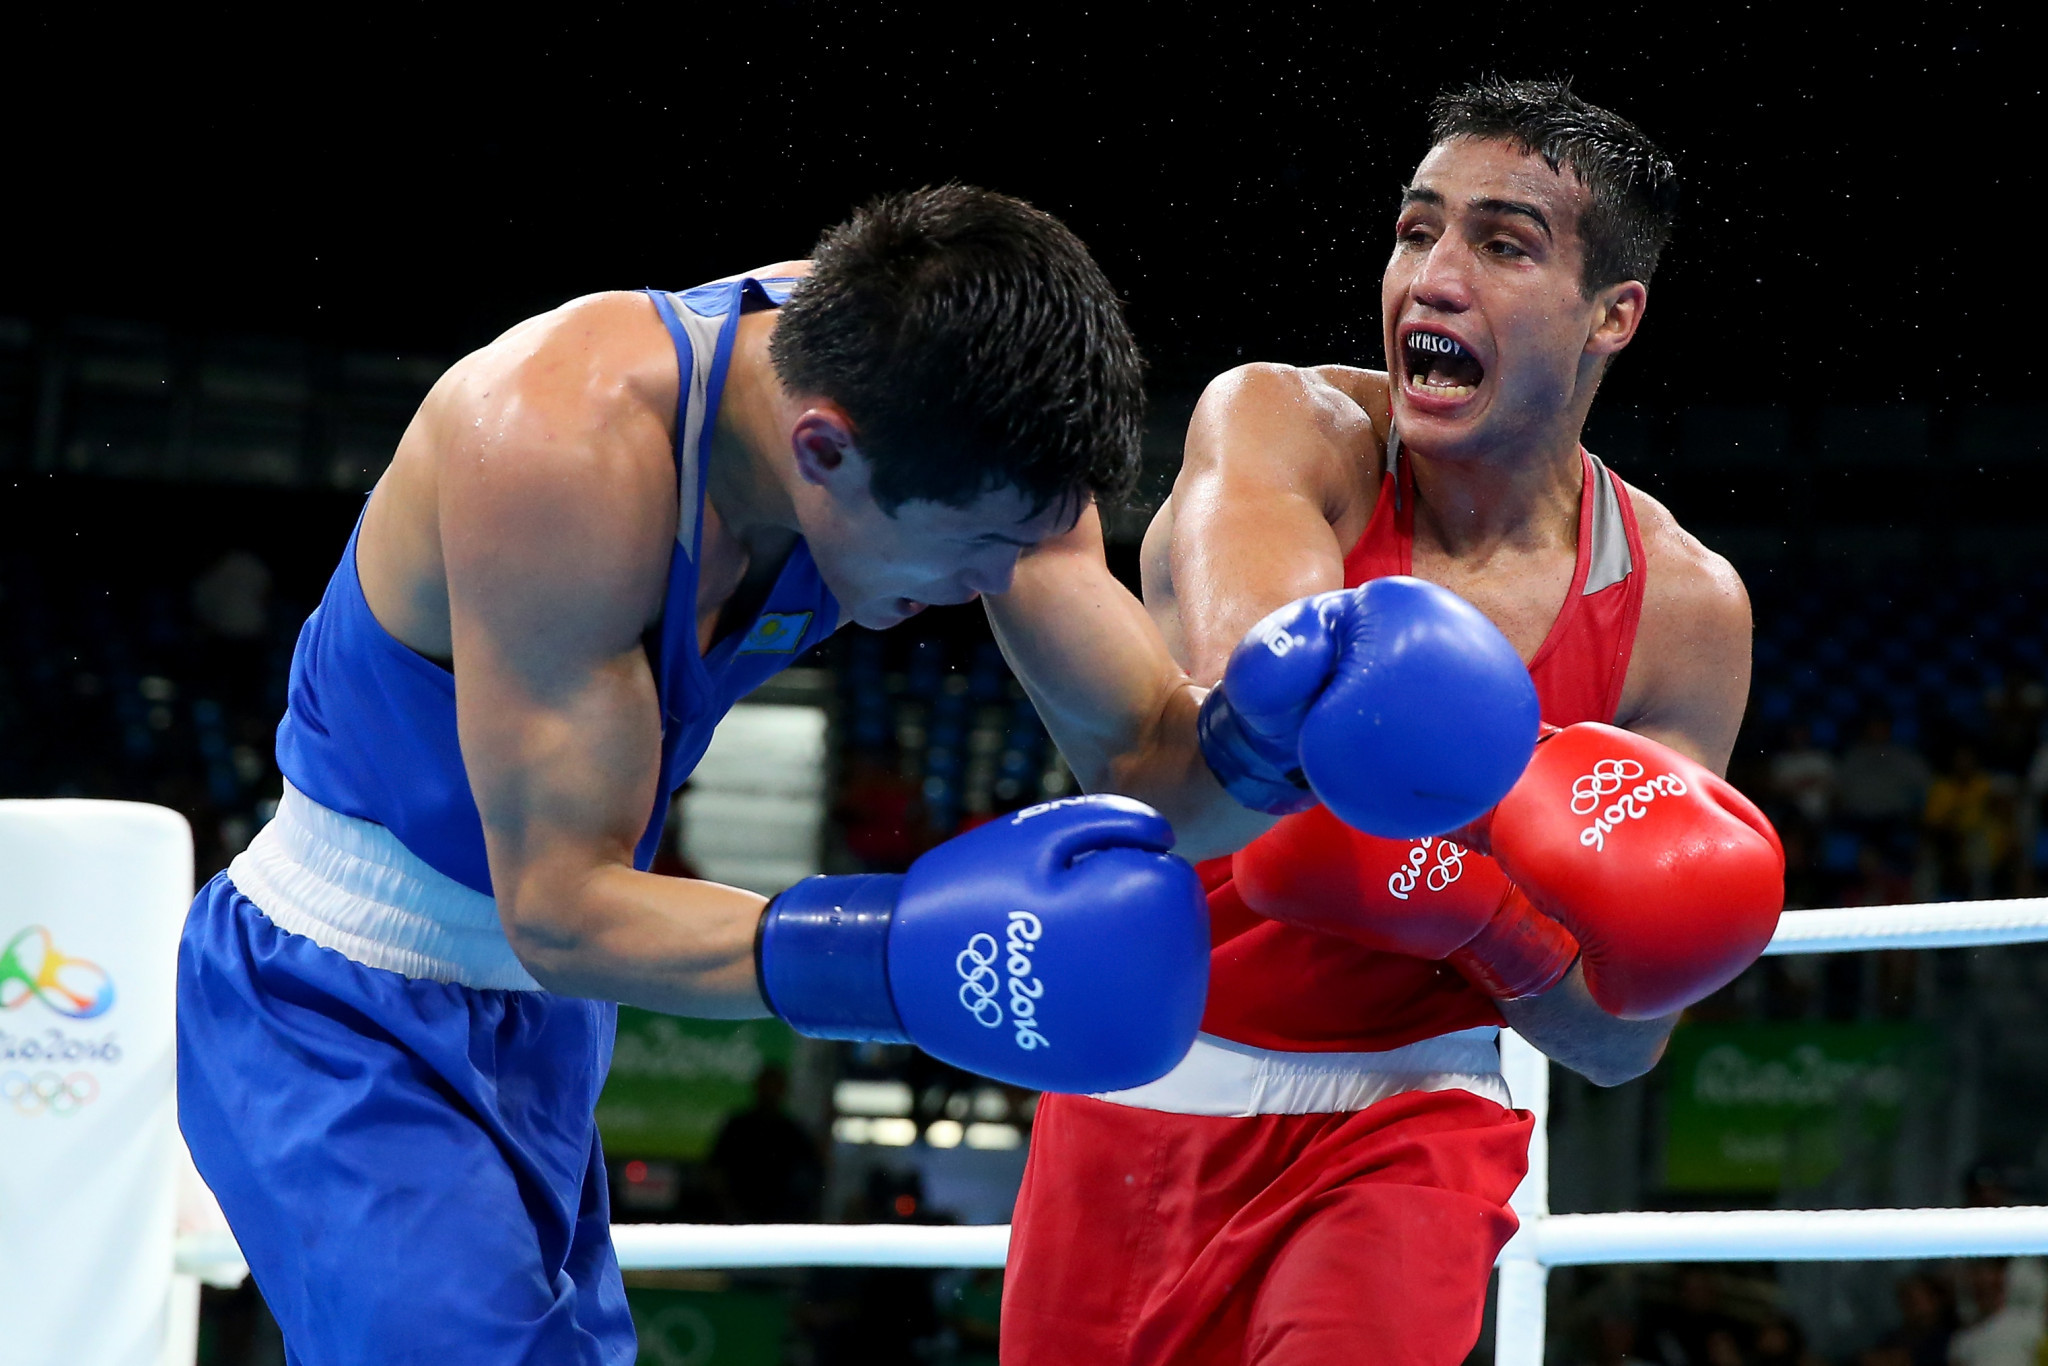 Boxing is set to feature at Tokyo 2020 but who organises the competition and qualification remains uncertain ©Getty Images